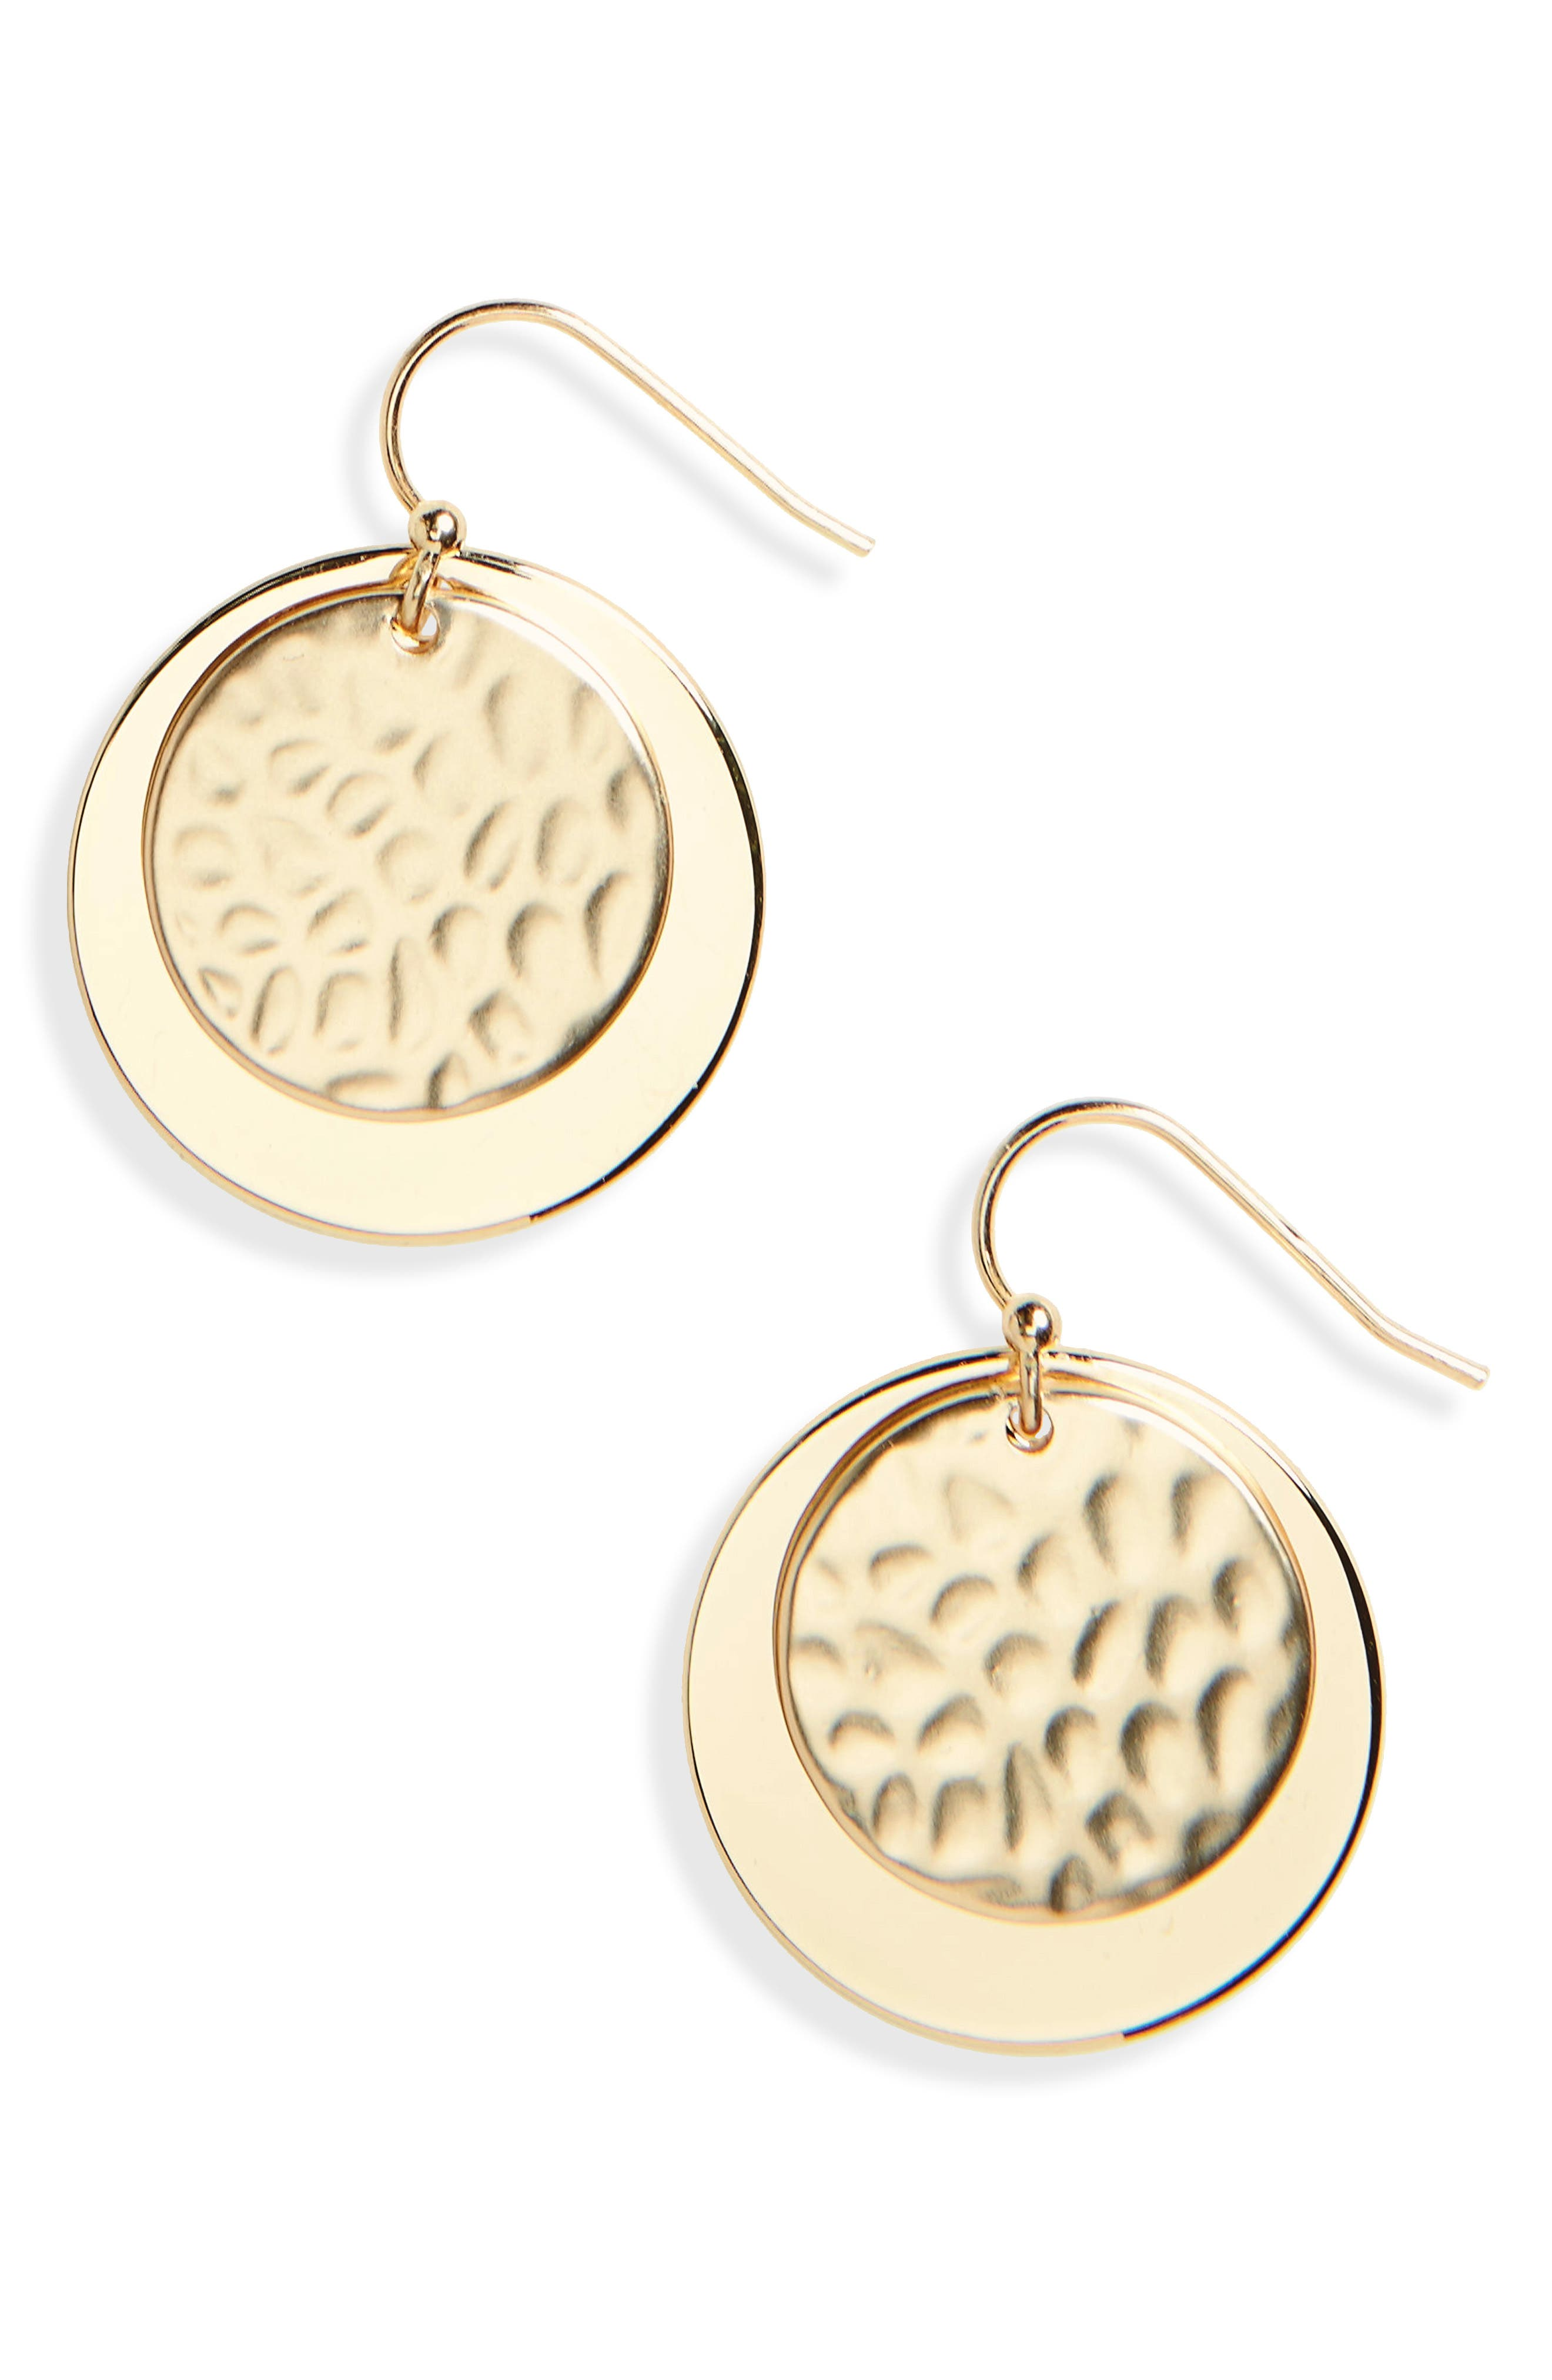 Hammered Metal Double Disc Earrings,                         Main,                         color, Worn Gold